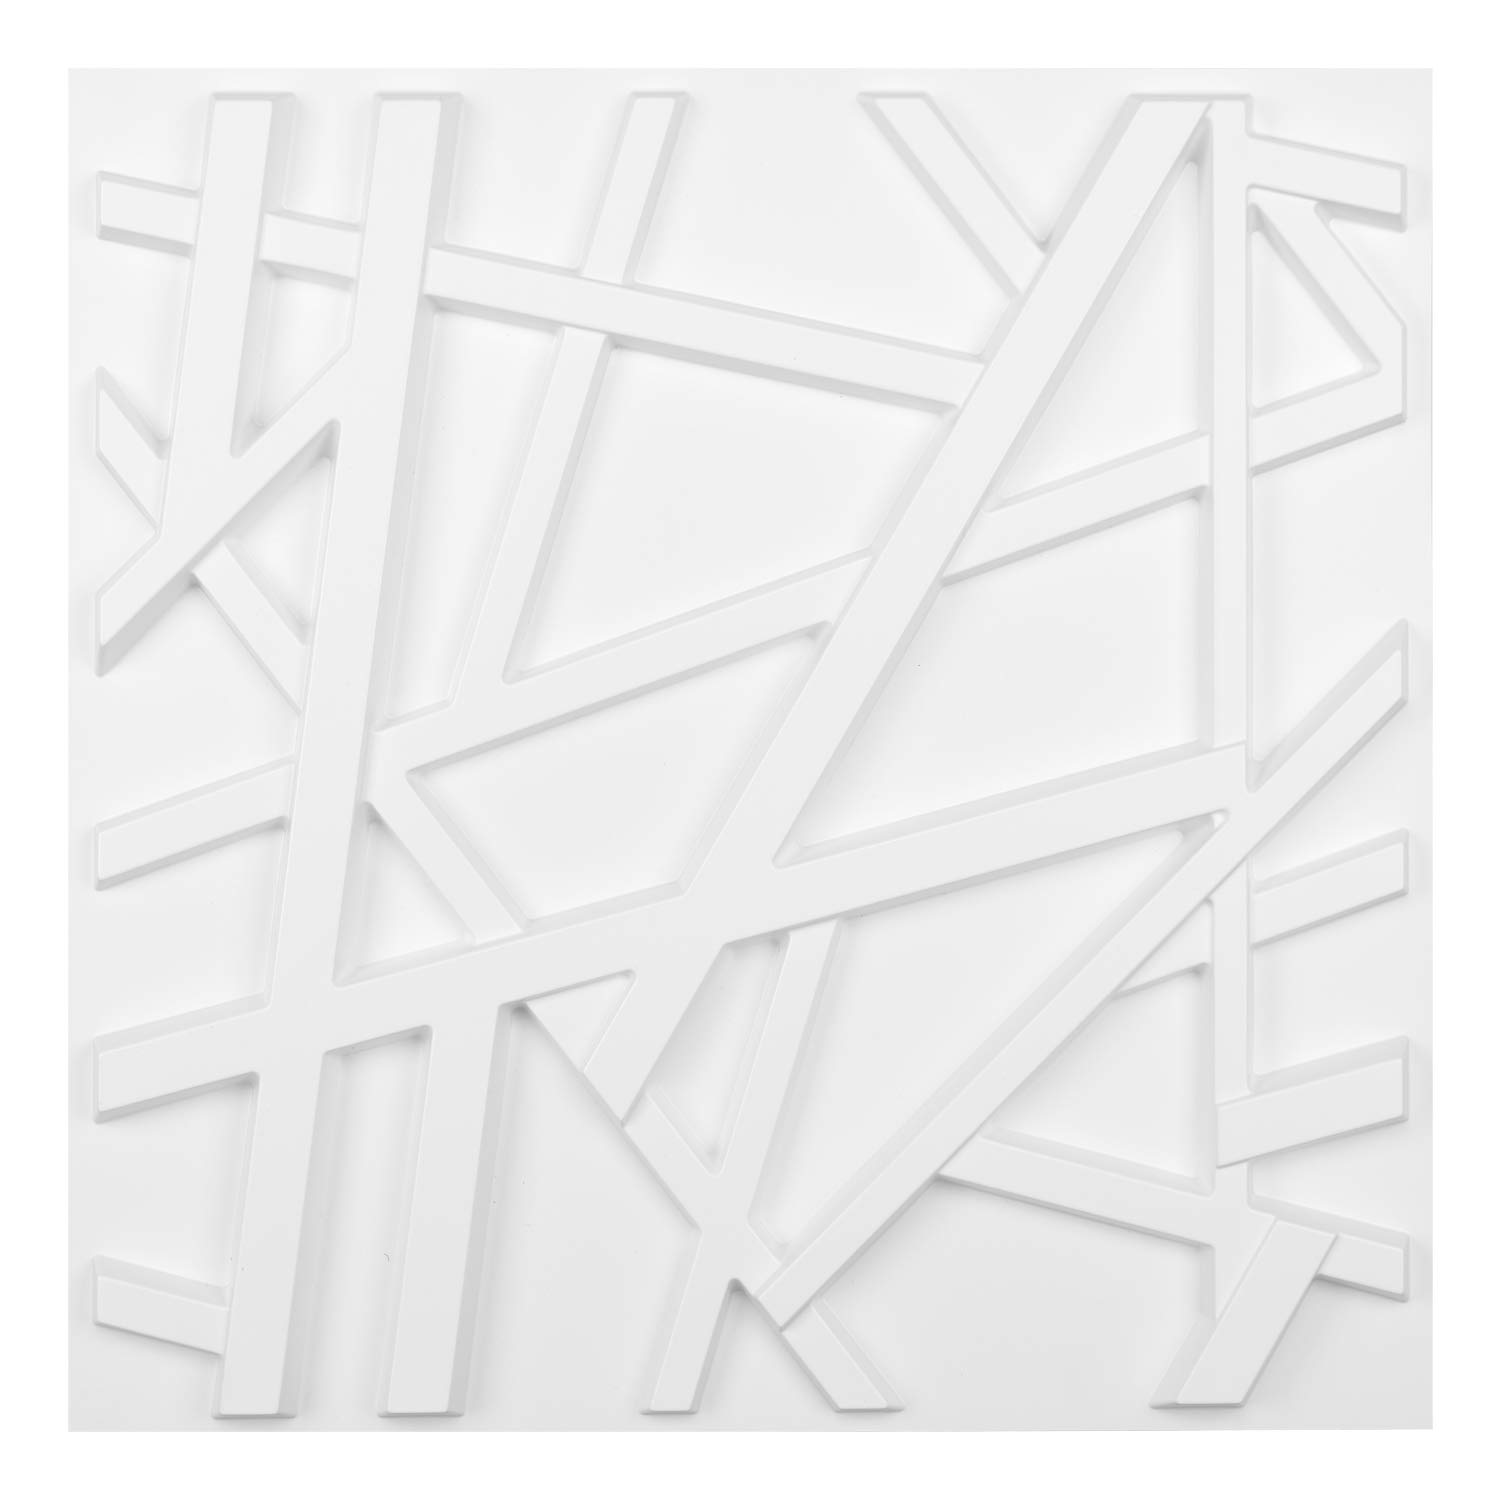 Matt White PVC 3D Wall Panel Geometric Crossing Lines Cover 32 Sqft, for Residential and Commercial Interior Decor